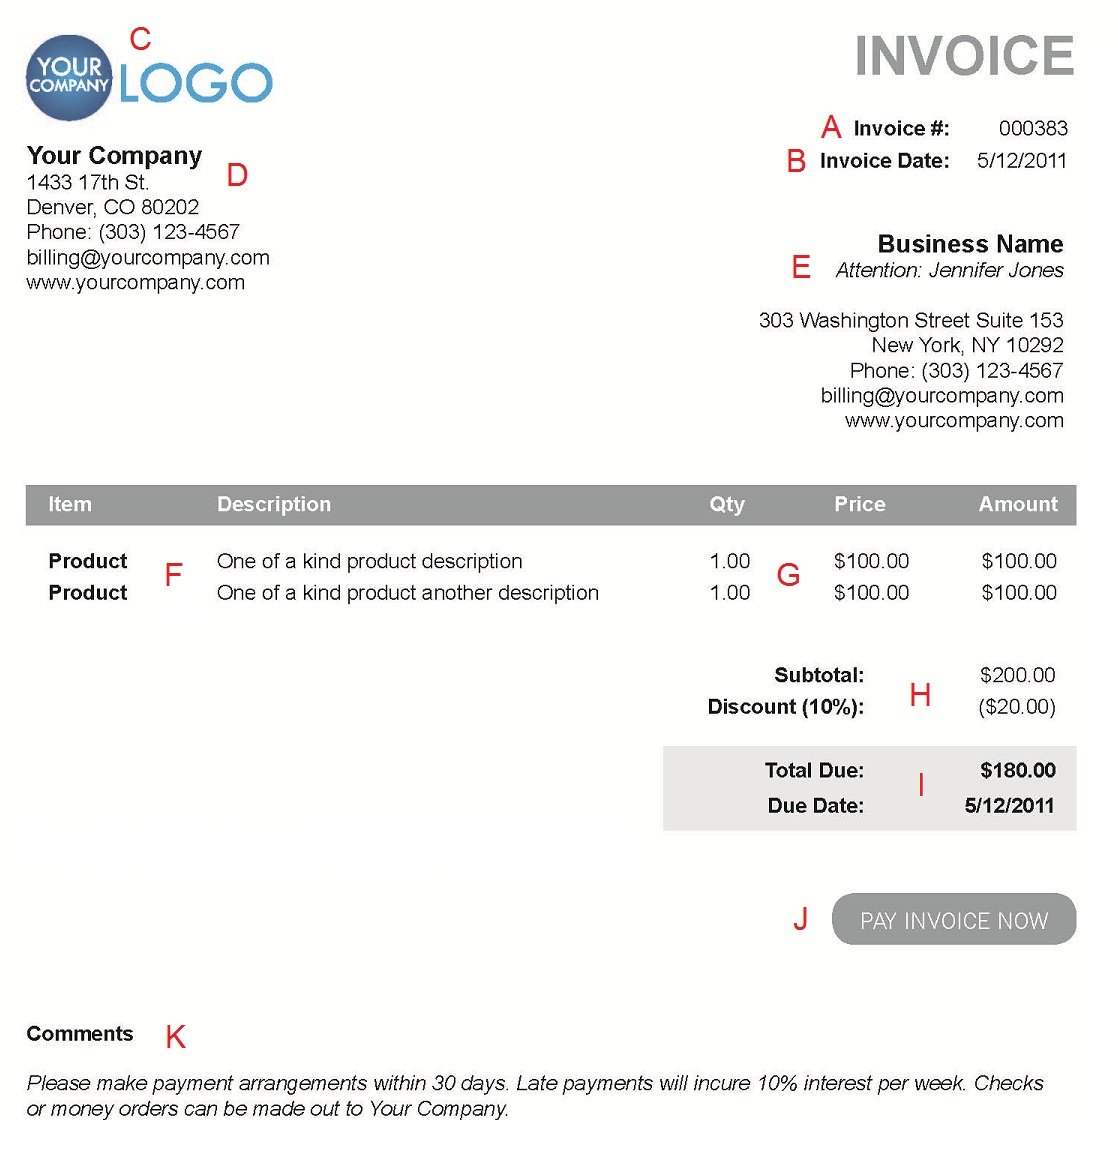 Weirdmailus  Stunning The  Different Sections Of An Electronic Payment Invoice With Glamorous A  With Endearing Corolla Invoice Price Also Pay With Invoice In Addition Invoicing Mac And Express Invoice Code As Well As Layout Of An Invoice Additionally Letter Requesting Payment Of Invoice From Paysimplecom With Weirdmailus  Glamorous The  Different Sections Of An Electronic Payment Invoice With Endearing A  And Stunning Corolla Invoice Price Also Pay With Invoice In Addition Invoicing Mac From Paysimplecom